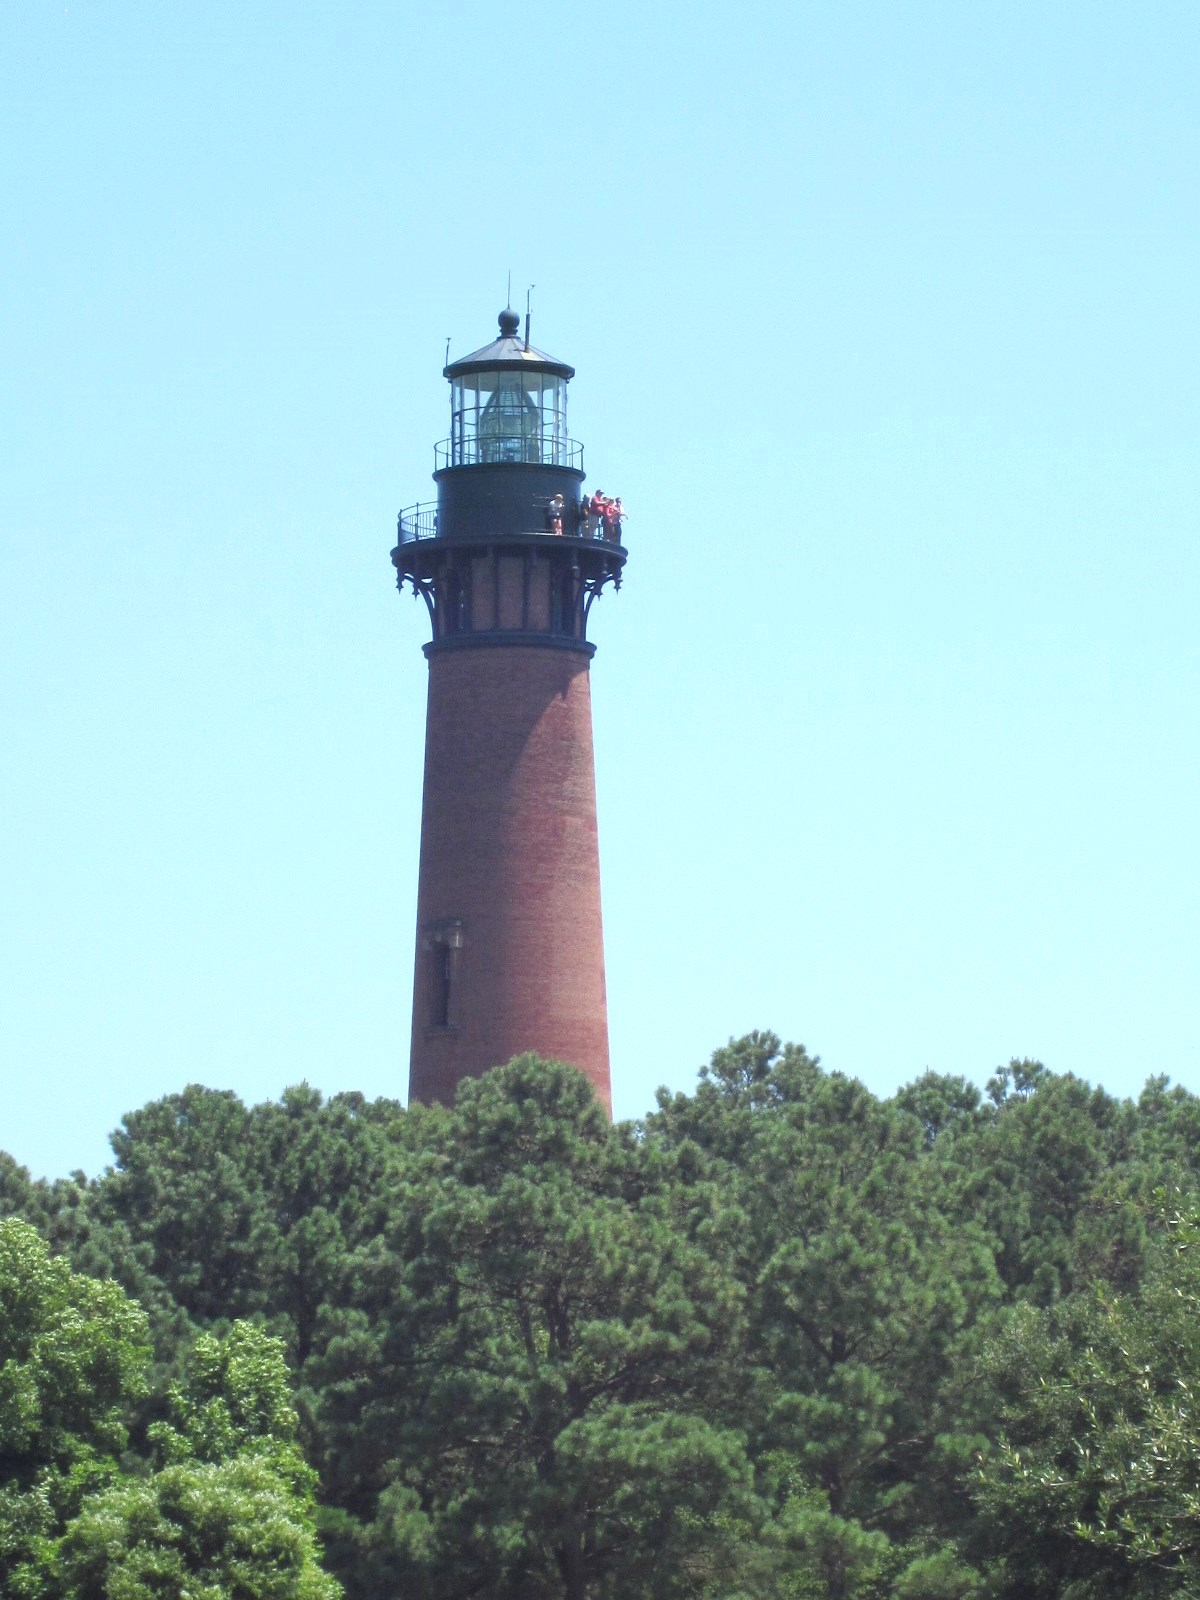 Currituck Beach Lighthouse Great Vantage Point For Seeing Northern Outer Banks